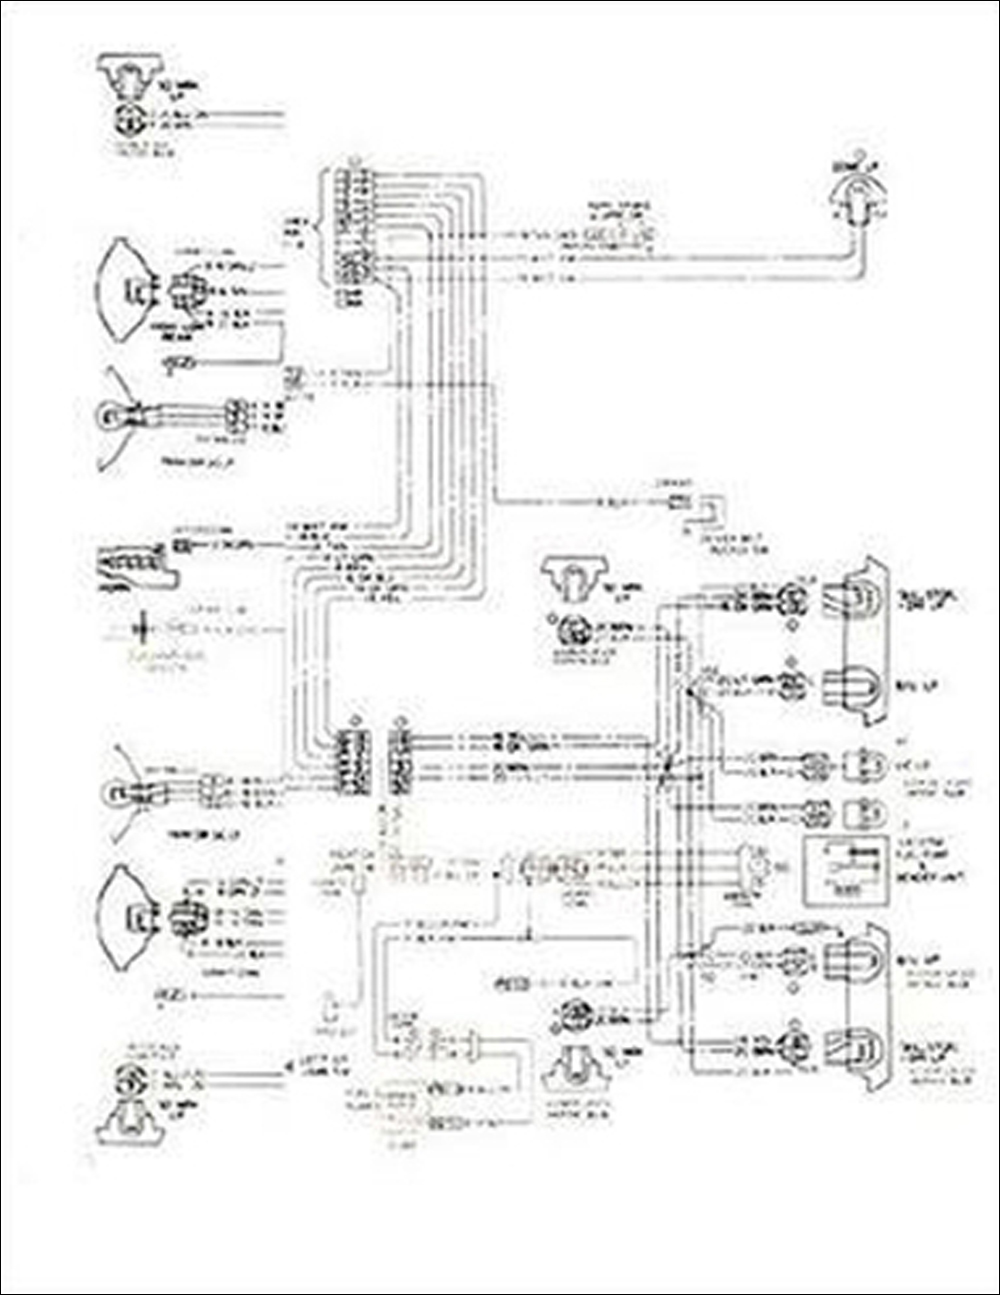 1977 Chevy Monte Carlo Wiring Diagram Content Resource Of 1999 Venture Chevelle Malibu And Original Rh Faxonautoliterature Com Tahoe